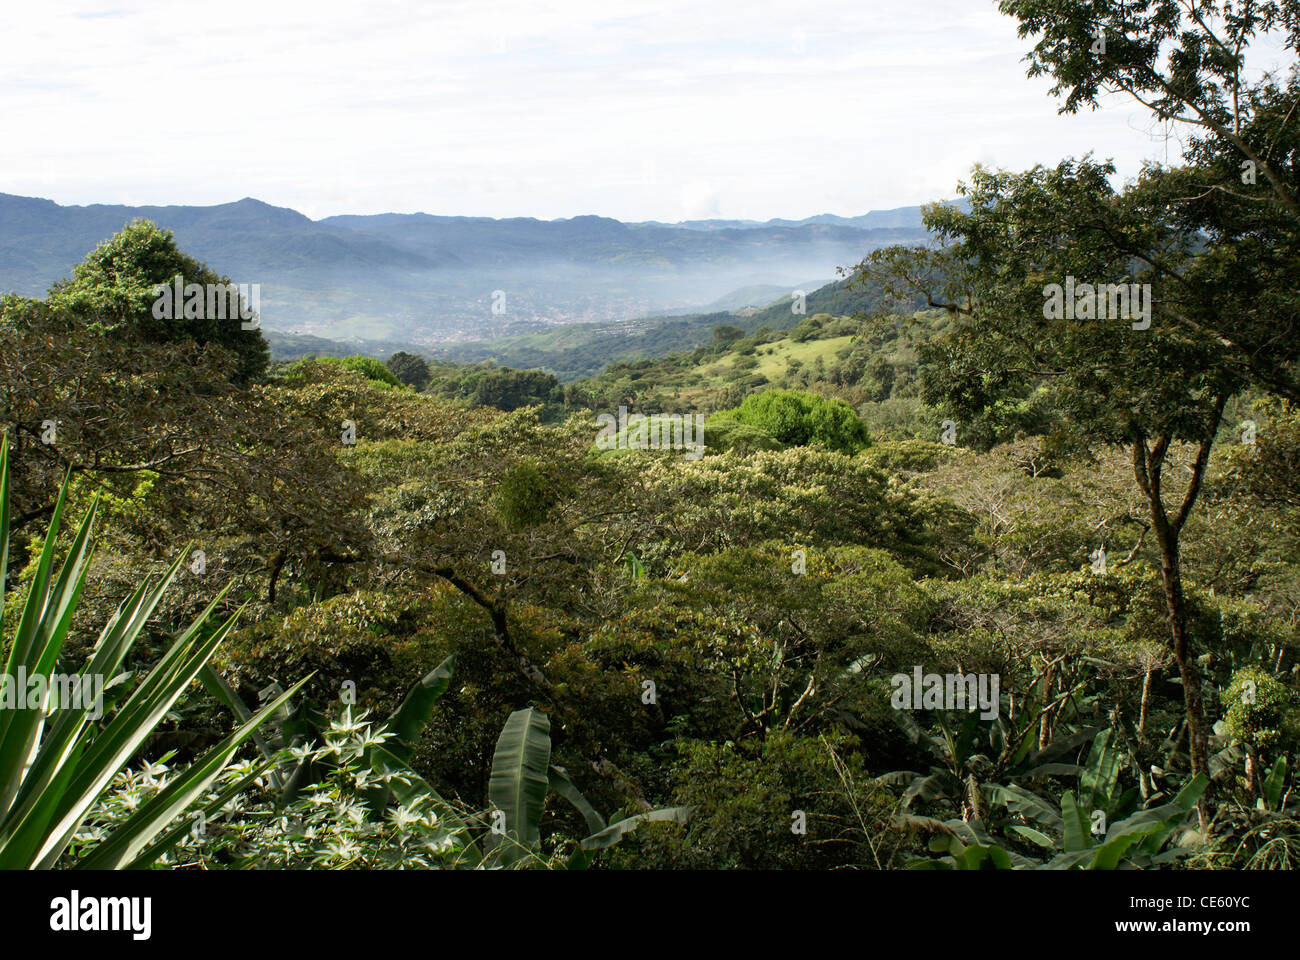 Forested mountainsides and valley near Matagalpa, Nicaragua - Stock Image